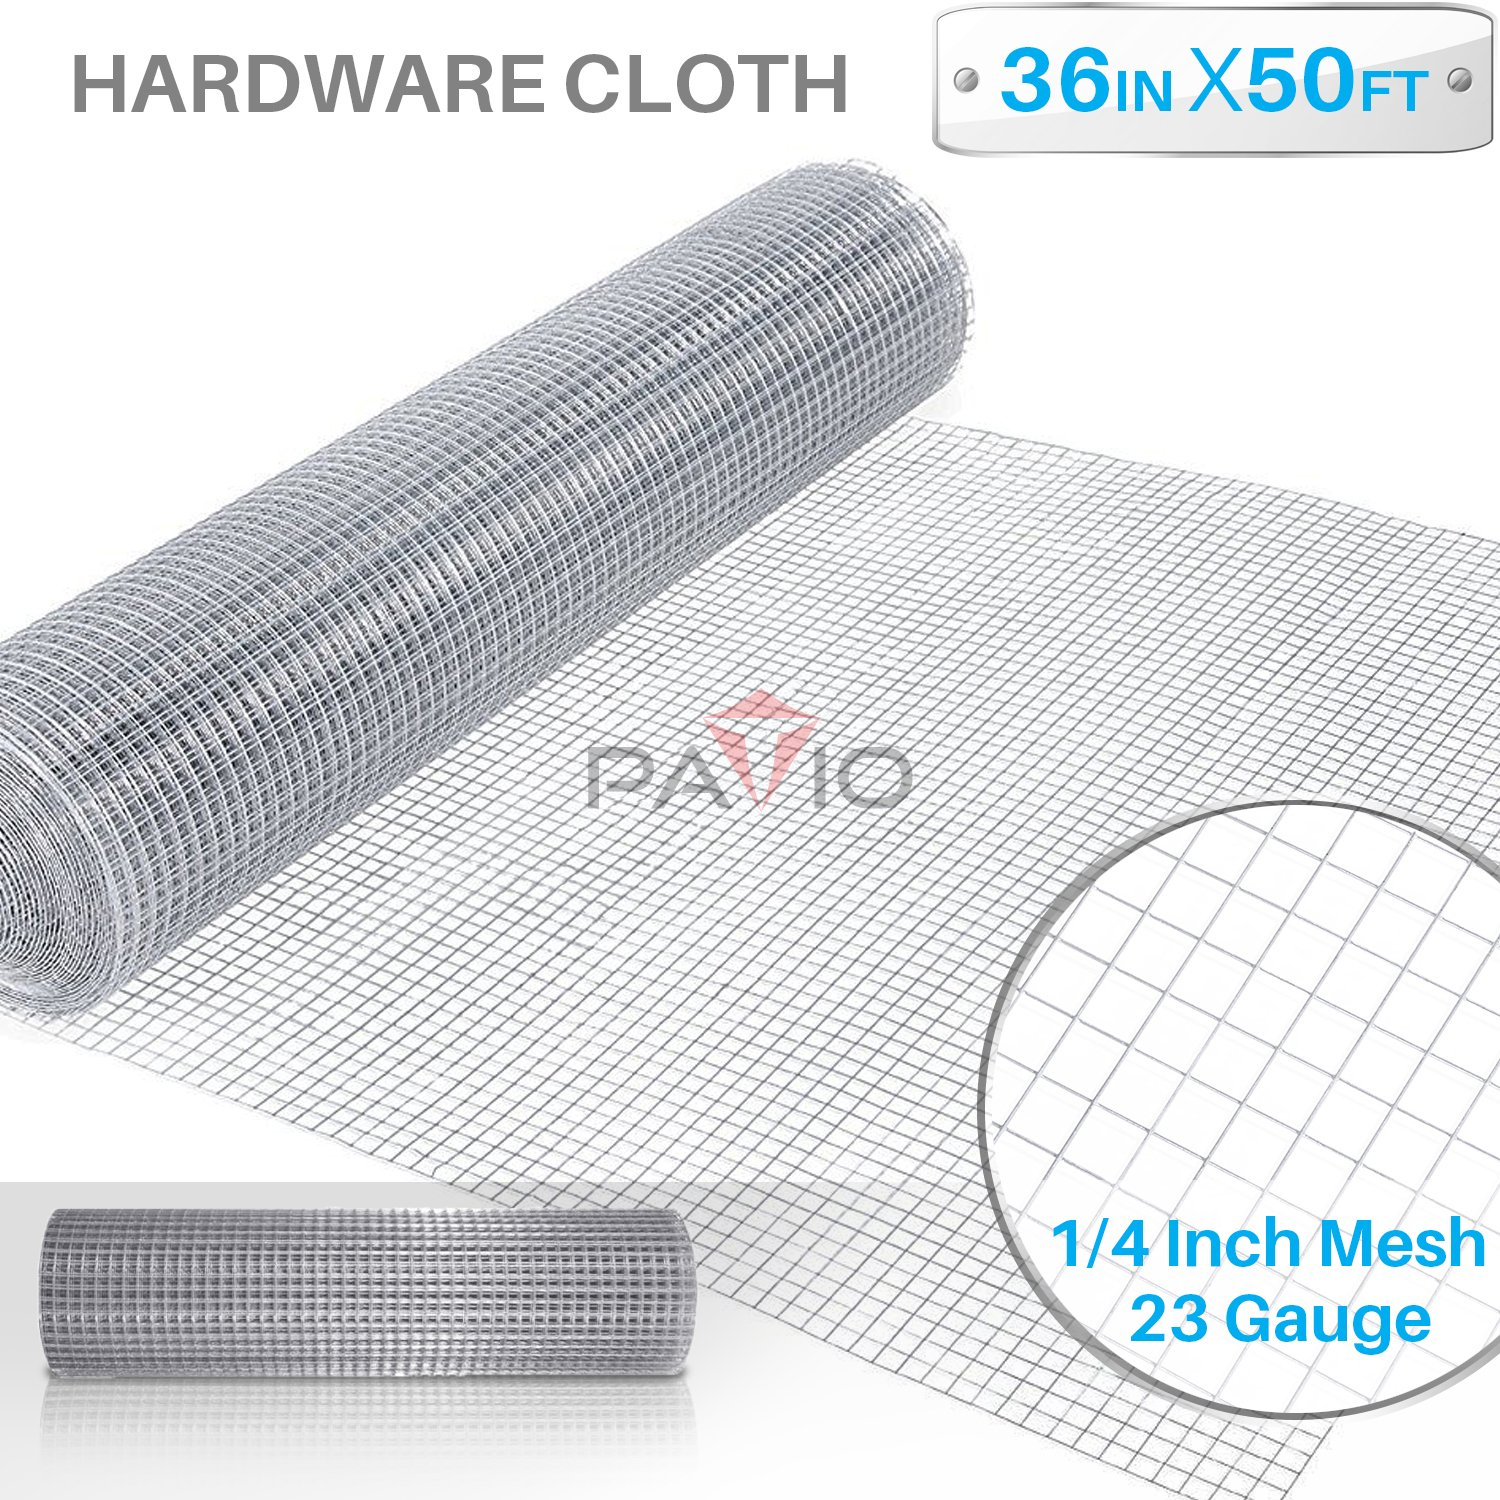 Patio Paradise 1/4 36-Inch x 50-Feet 23 Gauge Wire Mesh Galvanized Hardware Cloth for Garden Plant Rabbit Chicken Run Chain Link Fencing Guard Cage